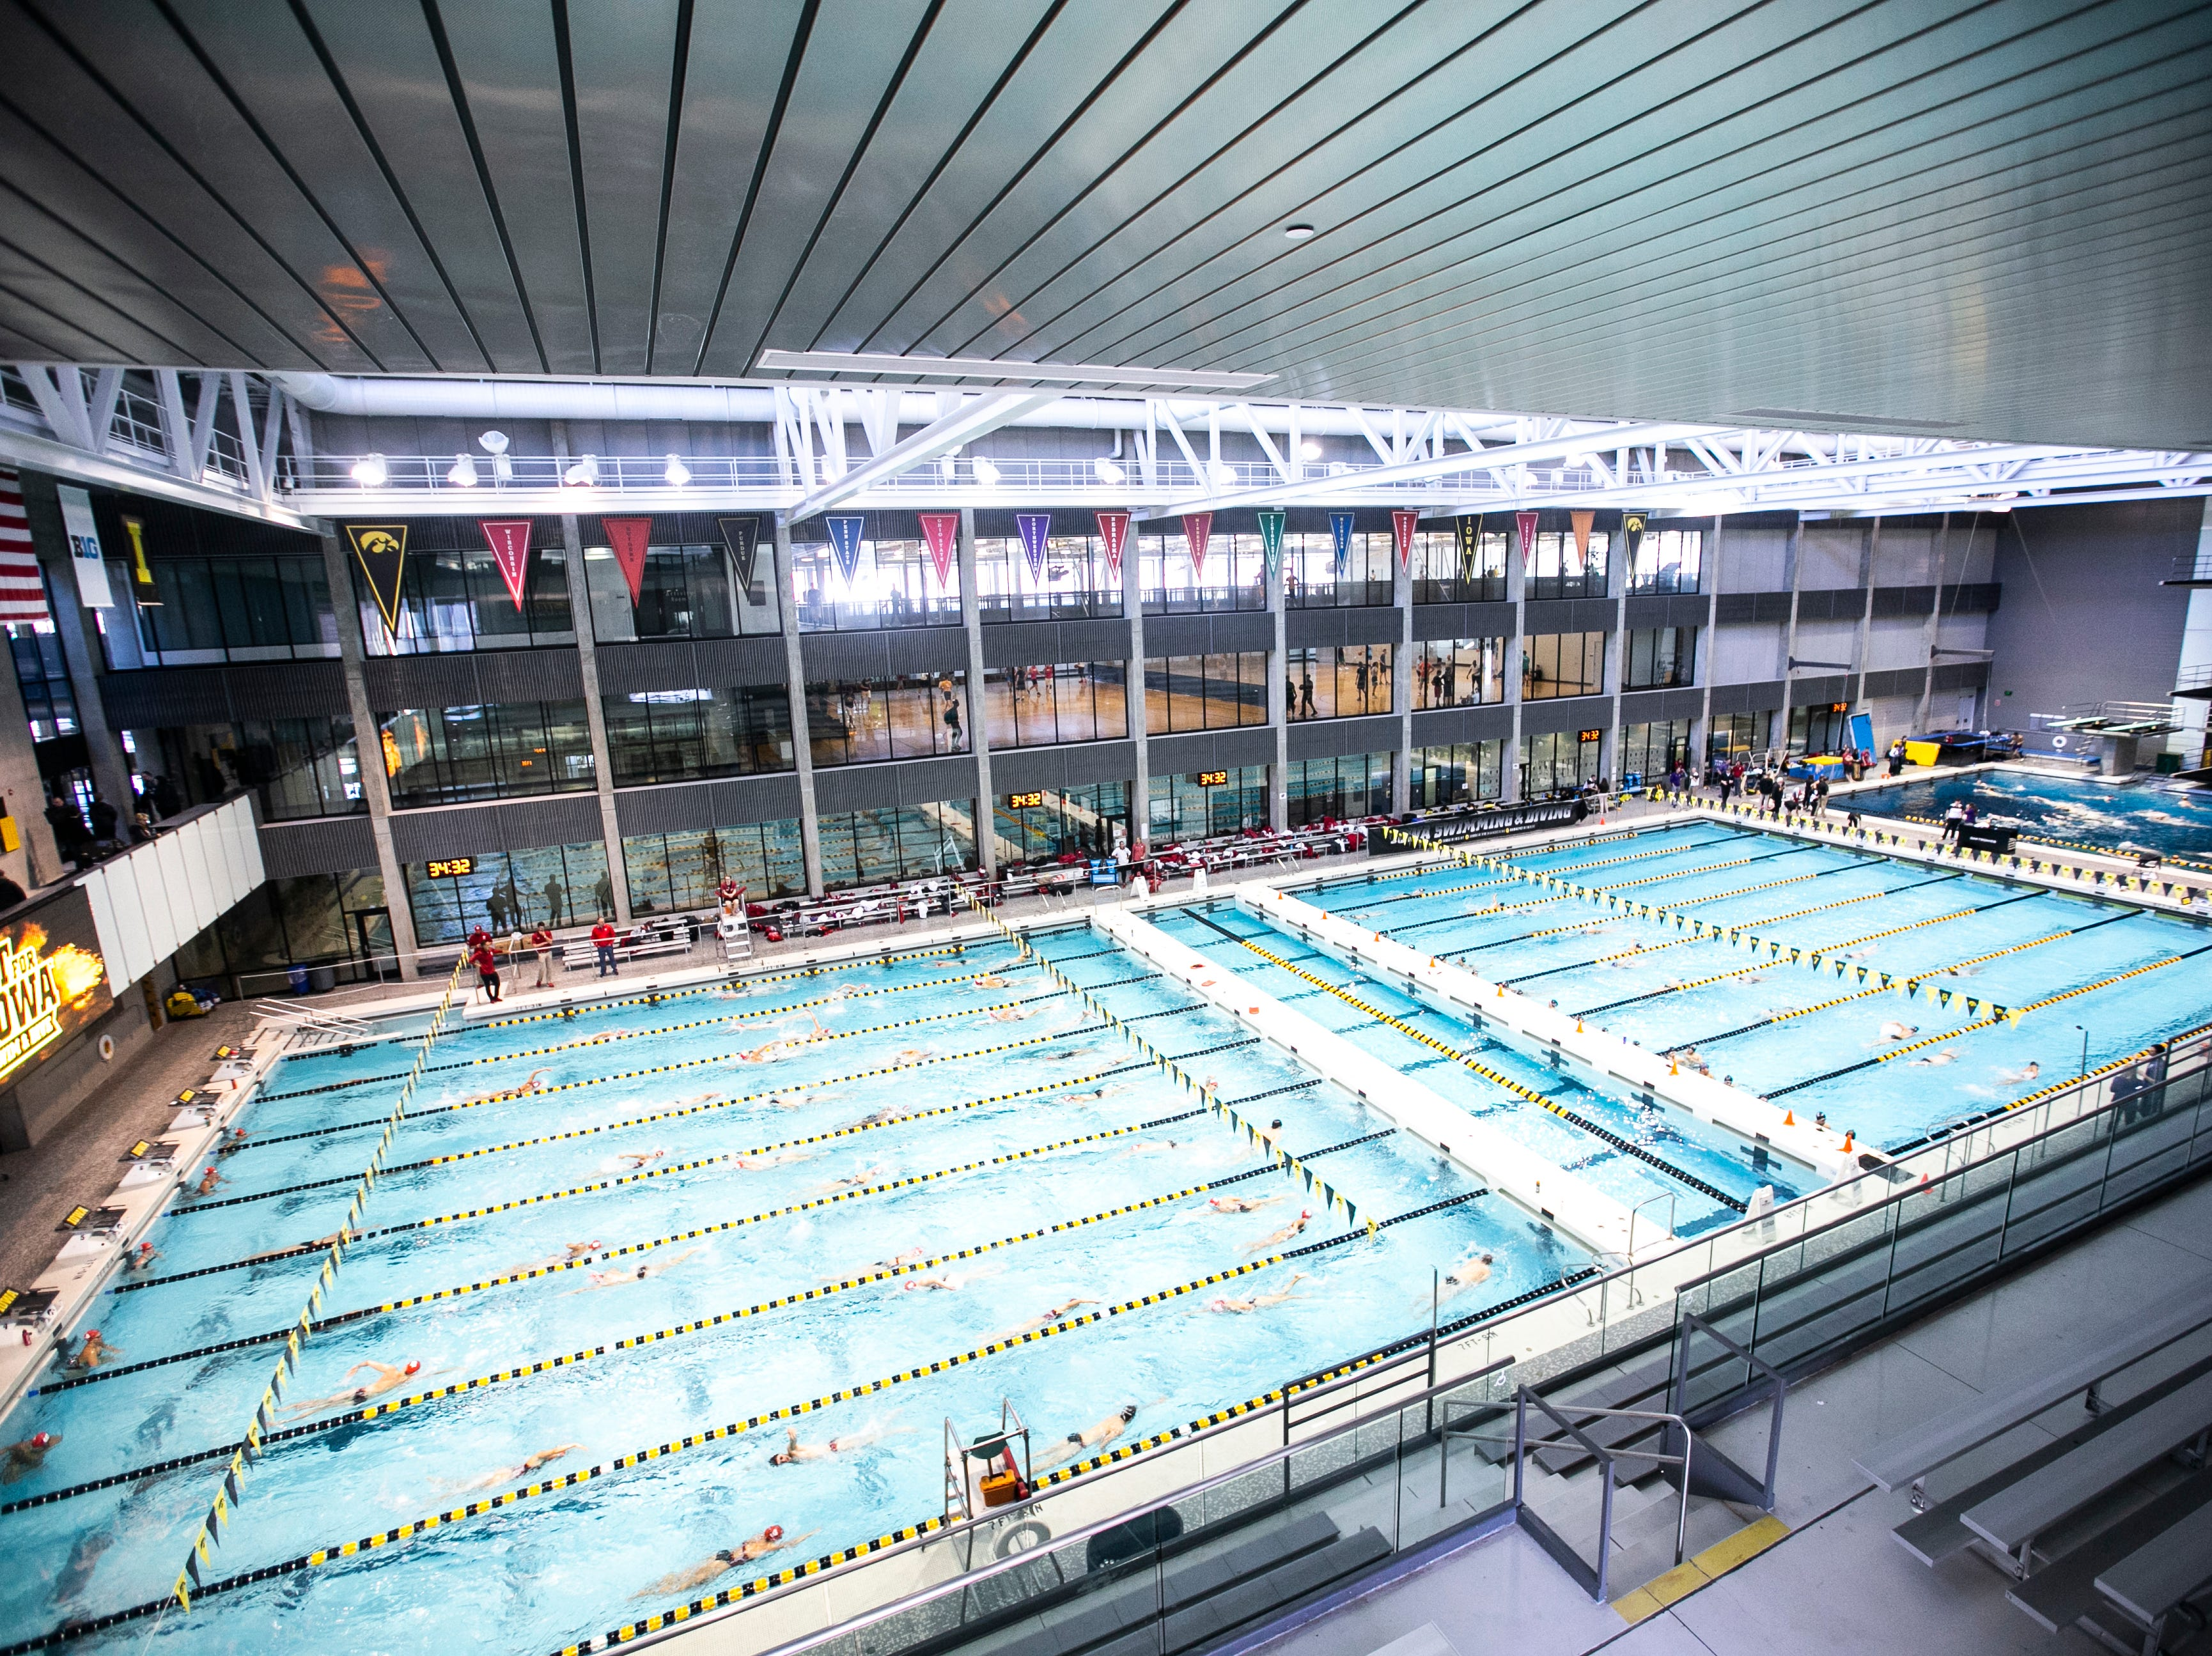 Swimmers cool down after a NCAA Big Ten Conference swimming meet on Saturday, Jan. 19, 2019, at the Campus Recreation and Wellness Center in Iowa City, Iowa.